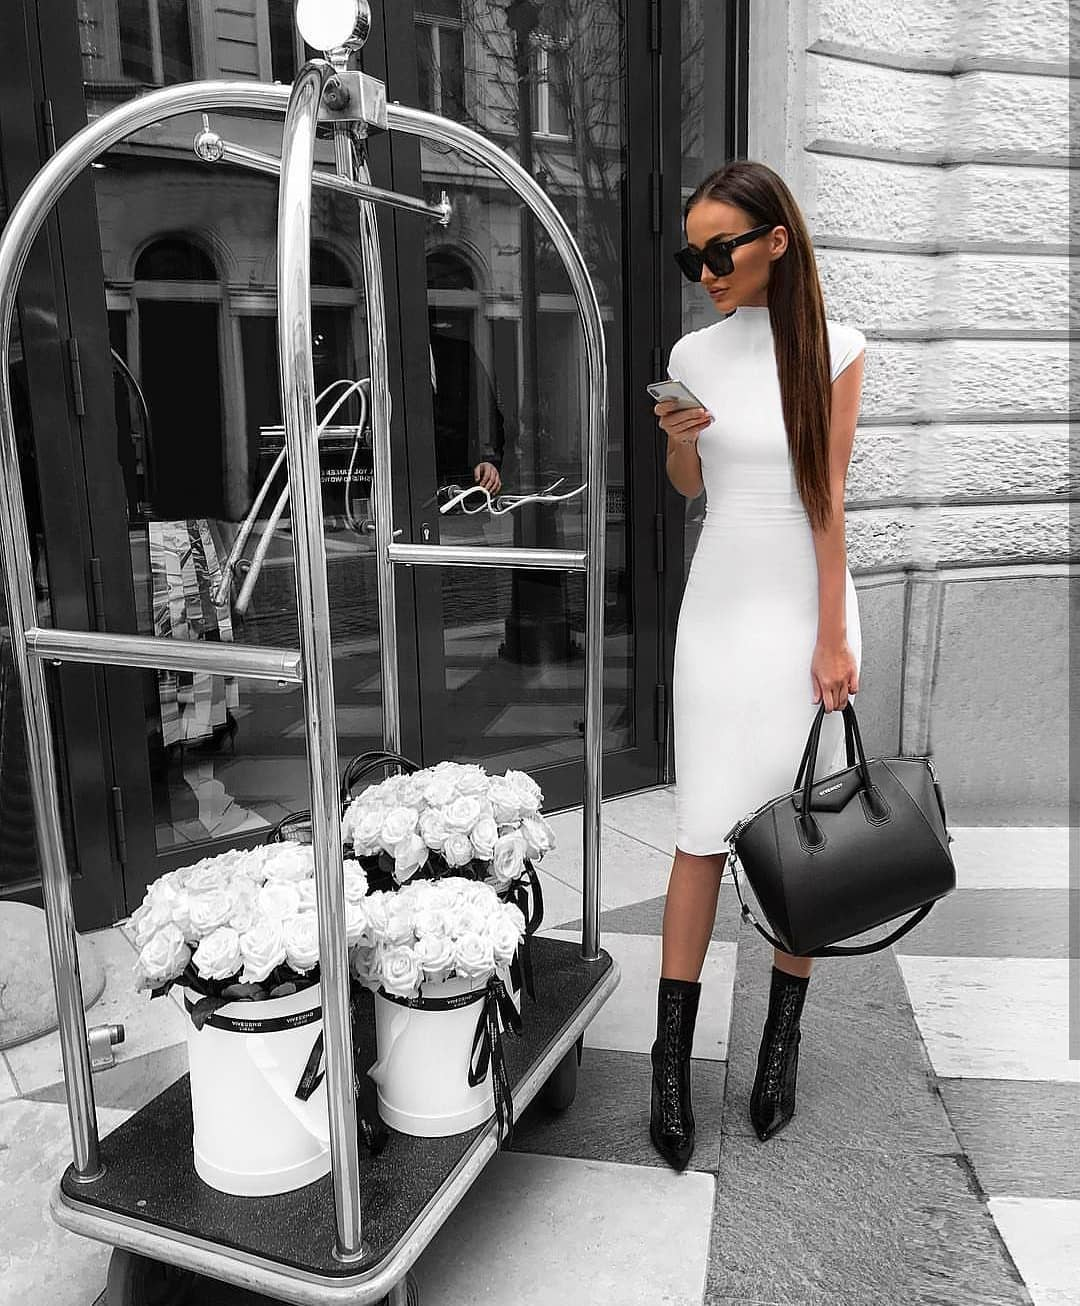 Can Brunette Wear White Pencil Dress With Black Ankle Boots 2019